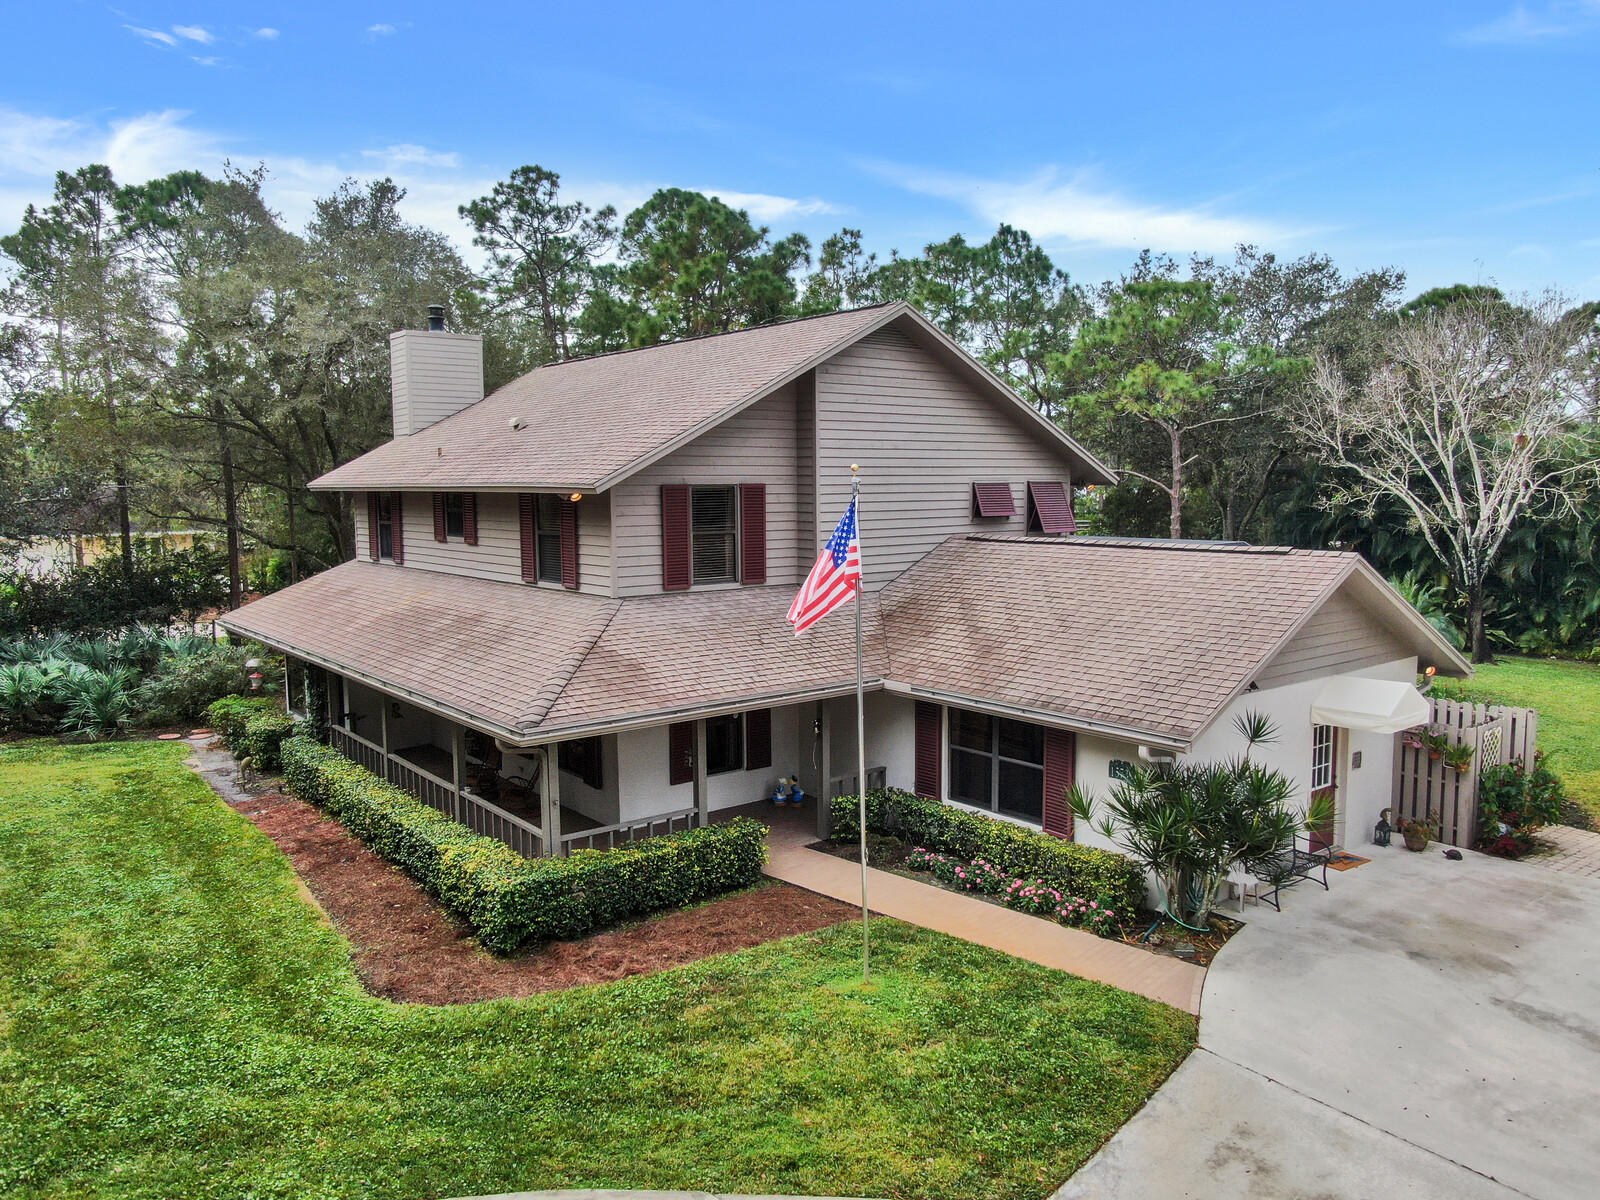 This porch-wrapped country home offers 4/bd/2.5/ba./3 car gar. with over 5500 total sq. ft. that exemplifies casual living inside & out. The kitchen-breakfast area has French doors that opens to a spacious covered back porch & gorgeous screened in pool area that includes a built-in grill. The family room has a warm down-home appeal with a wood burning brick fireplace and is adjacent to the dining room with access to the covered back porch & open patio area with beautiful landscaping & hot tub for easy indoor-outdoor entertaining. The second-floor features three bedrooms, a full bath & master suite that includes dual closets with one walk-in closet, a bath that has dual sinks a whirlpool tub, & separate shower. This home is further enhanced with an additional living/flex space on the main floor that could be used as a game room another bedroom or office with its own entrance & access to the cabana bathroom. The detached1320 sq.ft.3 garage has garage doors on the front and back for easy access and a covered motor home parking space. The property sits on 1.31 acres with gorgeous mature oak trees, fully fenced yard with gated entrance, abundant parking, corner lot and near a paved road.